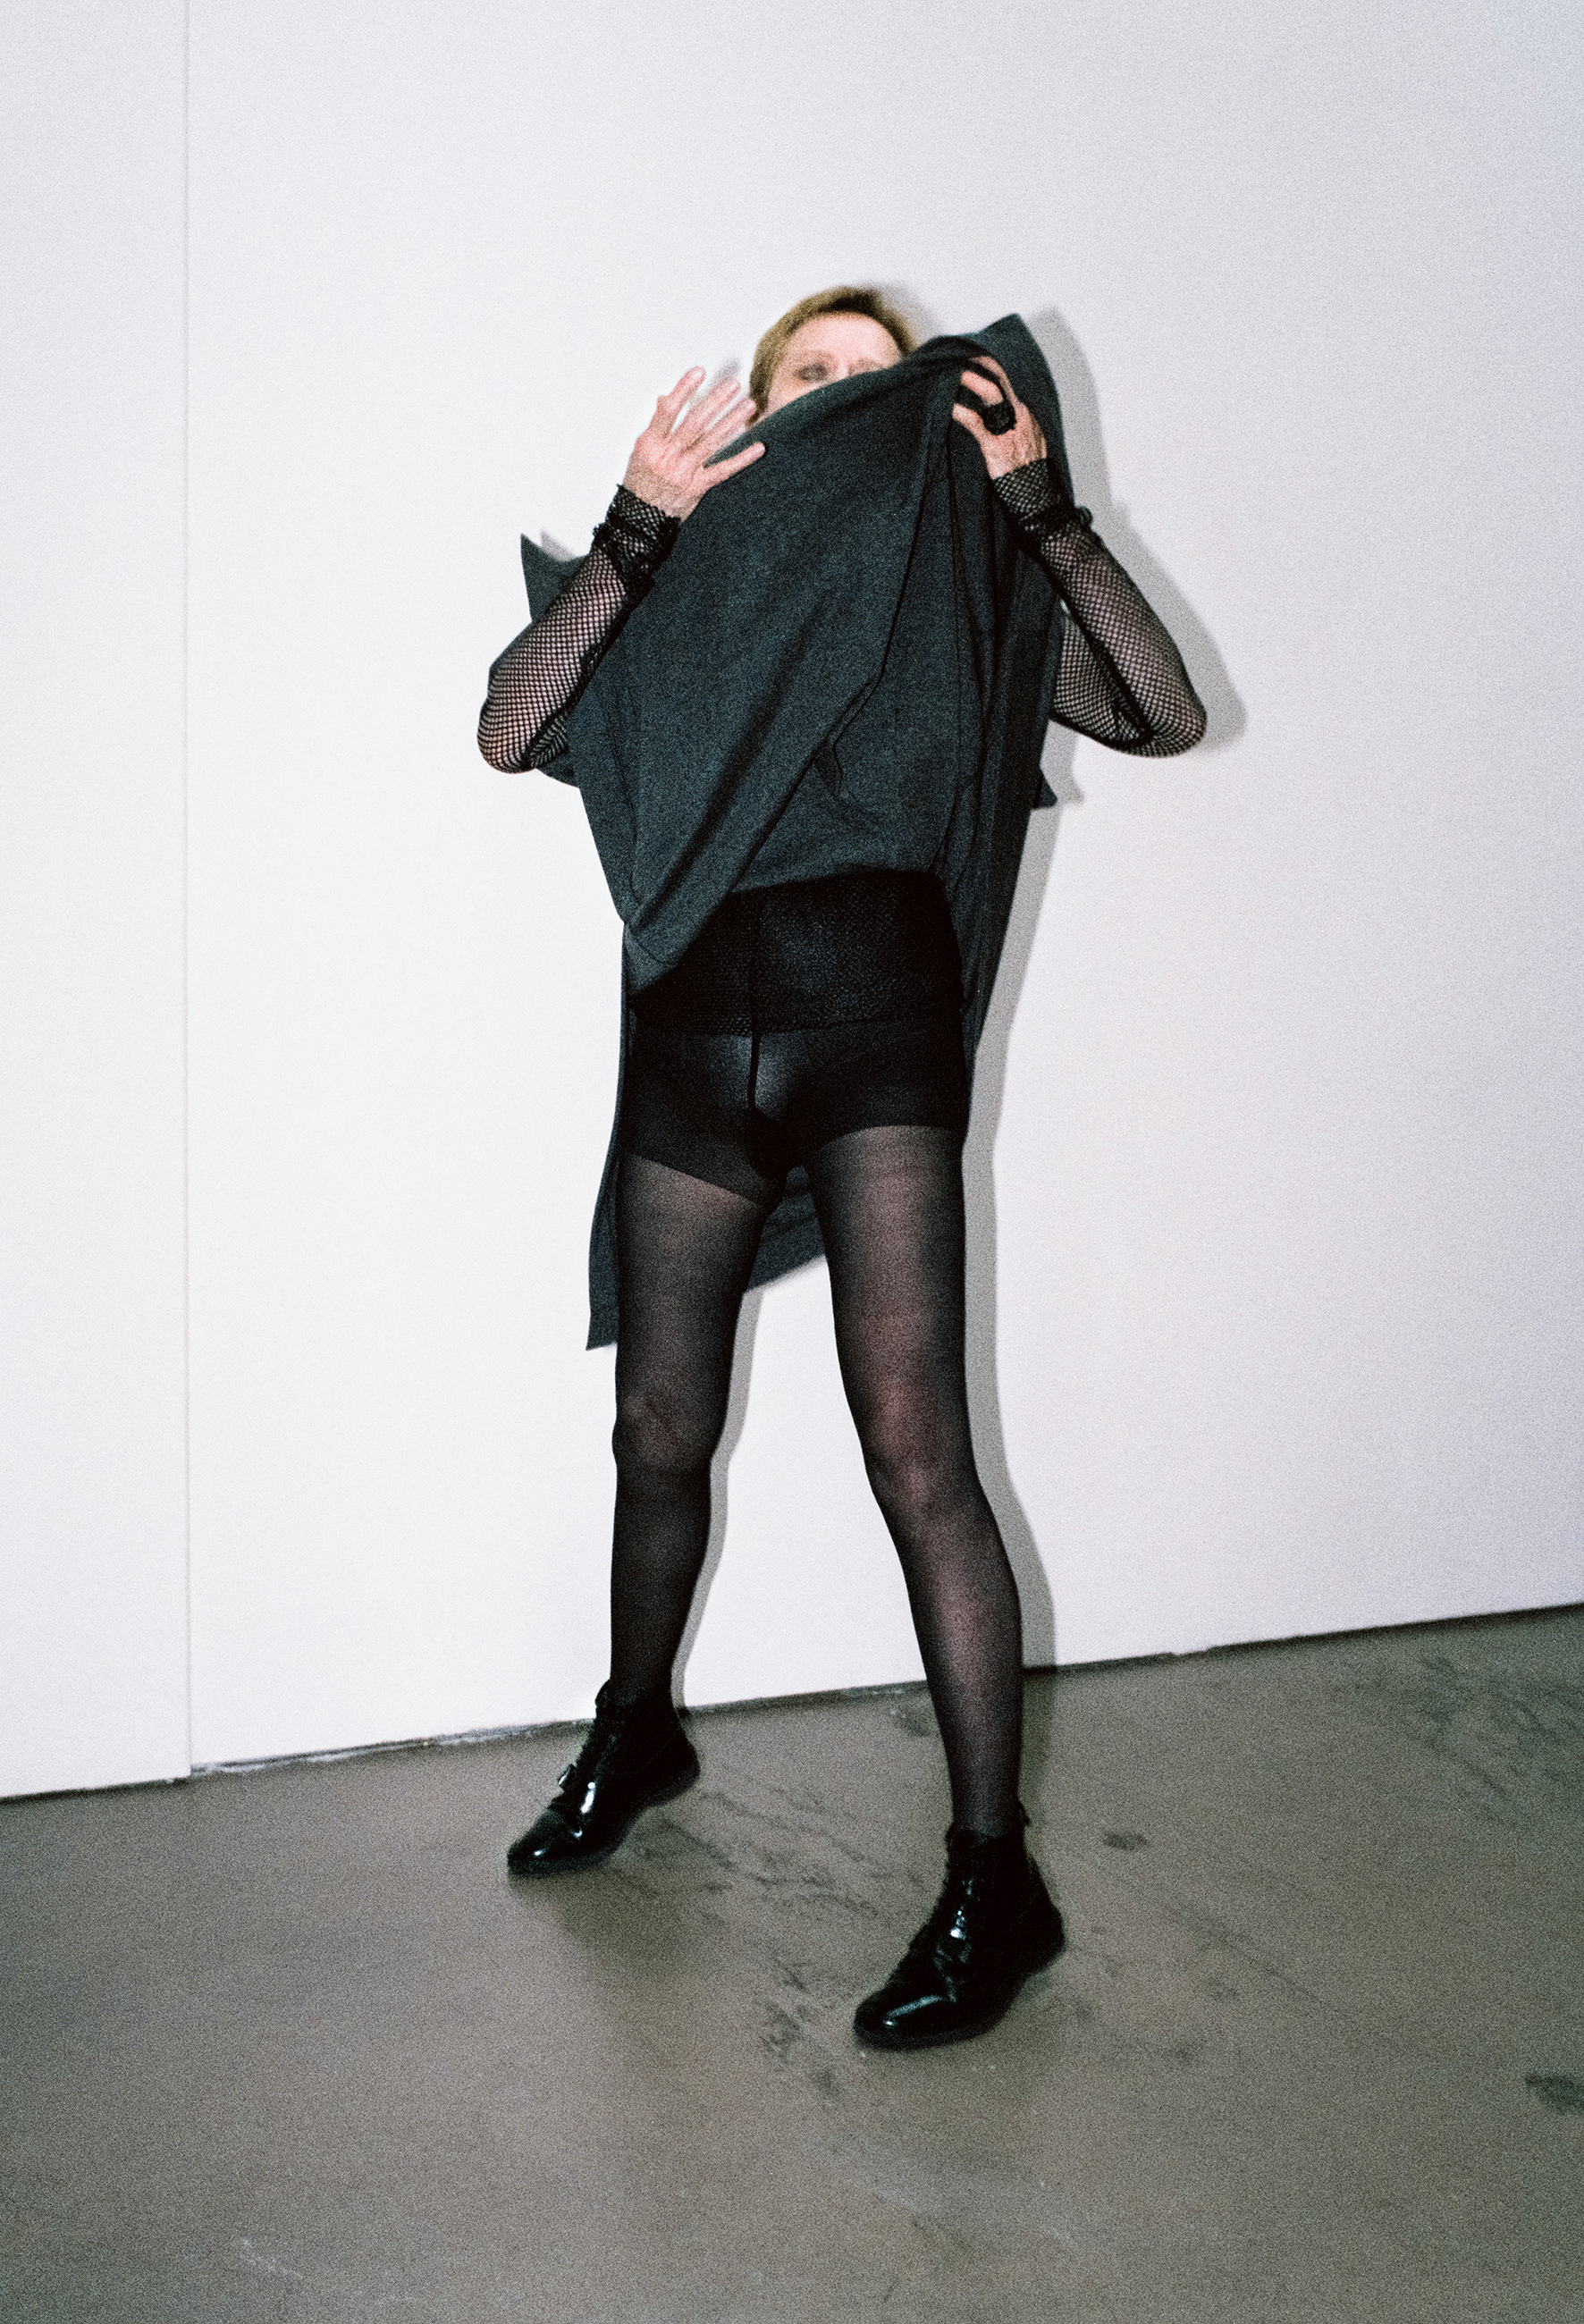 Grey wool dress, fishnet turtleneck, patent leather lace-up shoes, oversize ring. Black tights WOLFORD